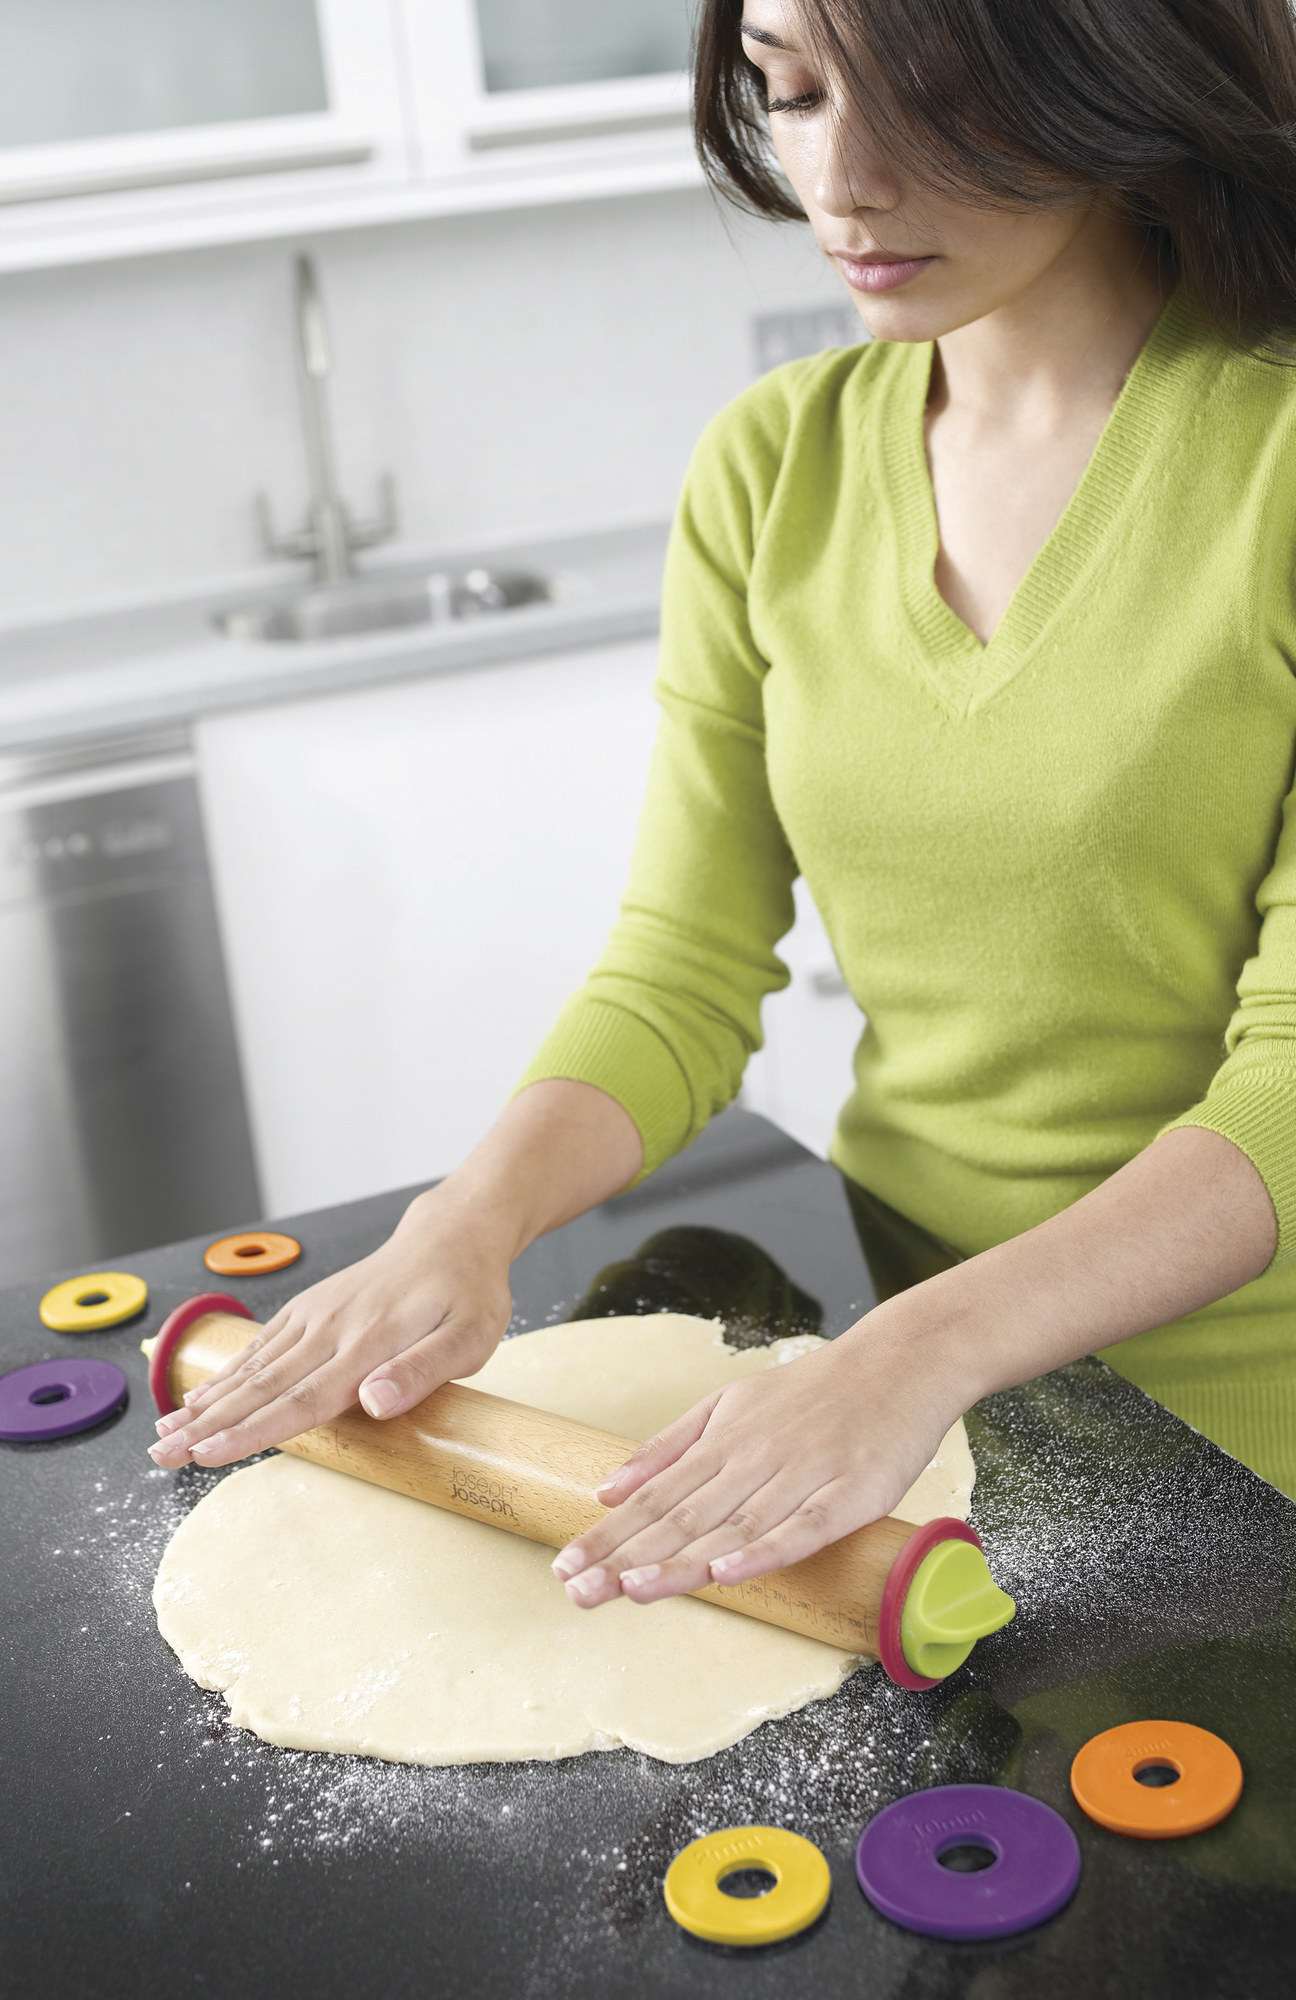 A model using the rolling pin